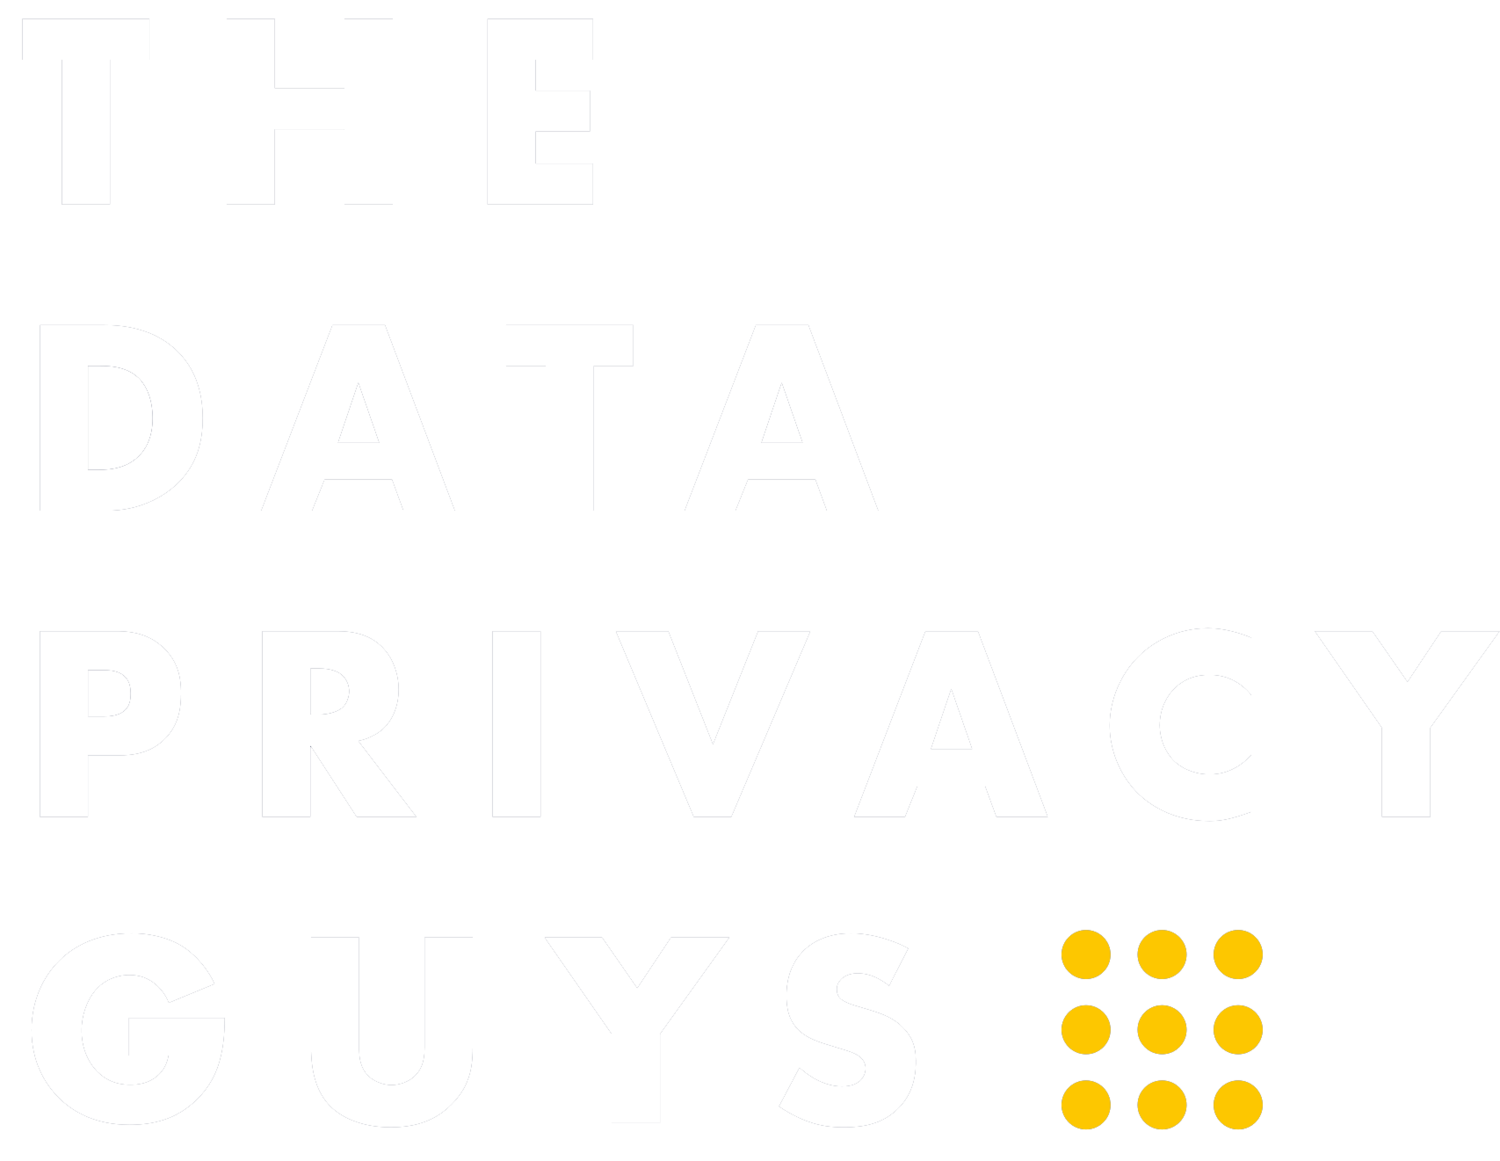 The Data Privacy Guys